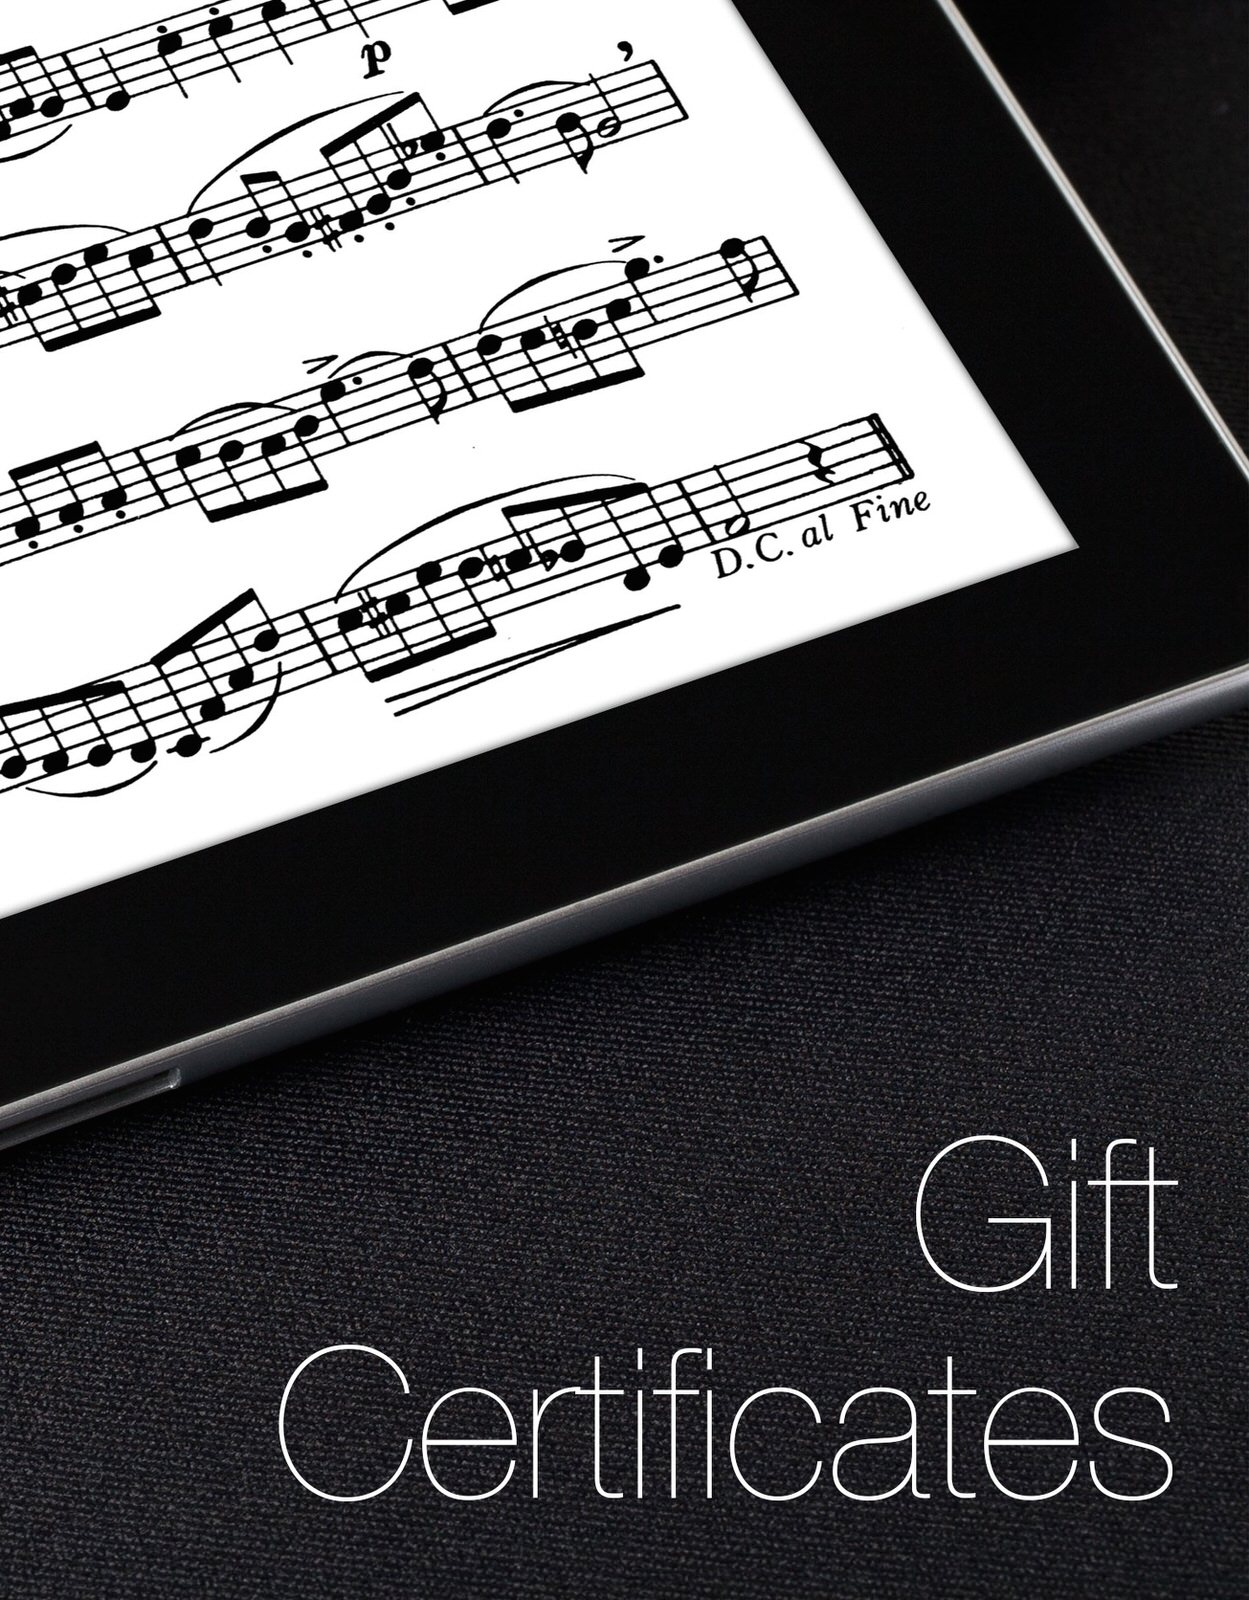 Gift Certificates-1